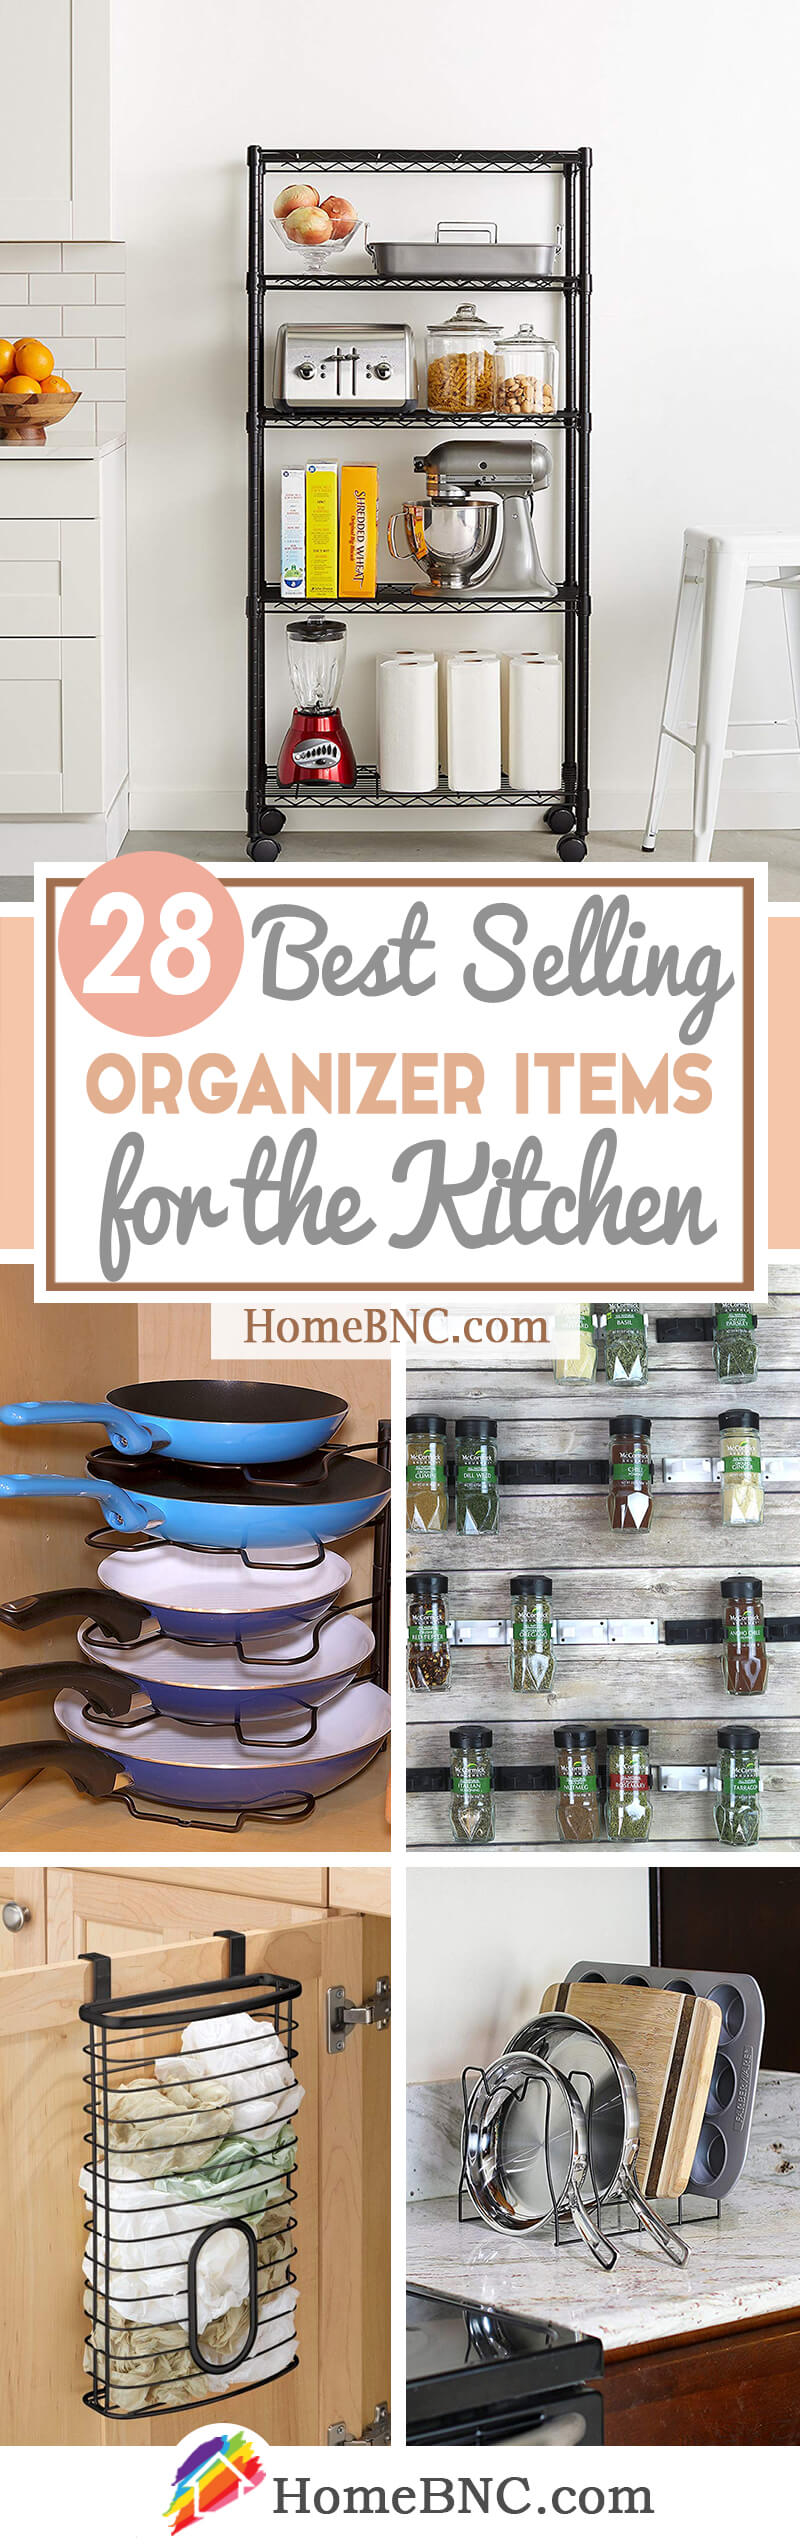 Best Selling Organizer Products for Kitchen